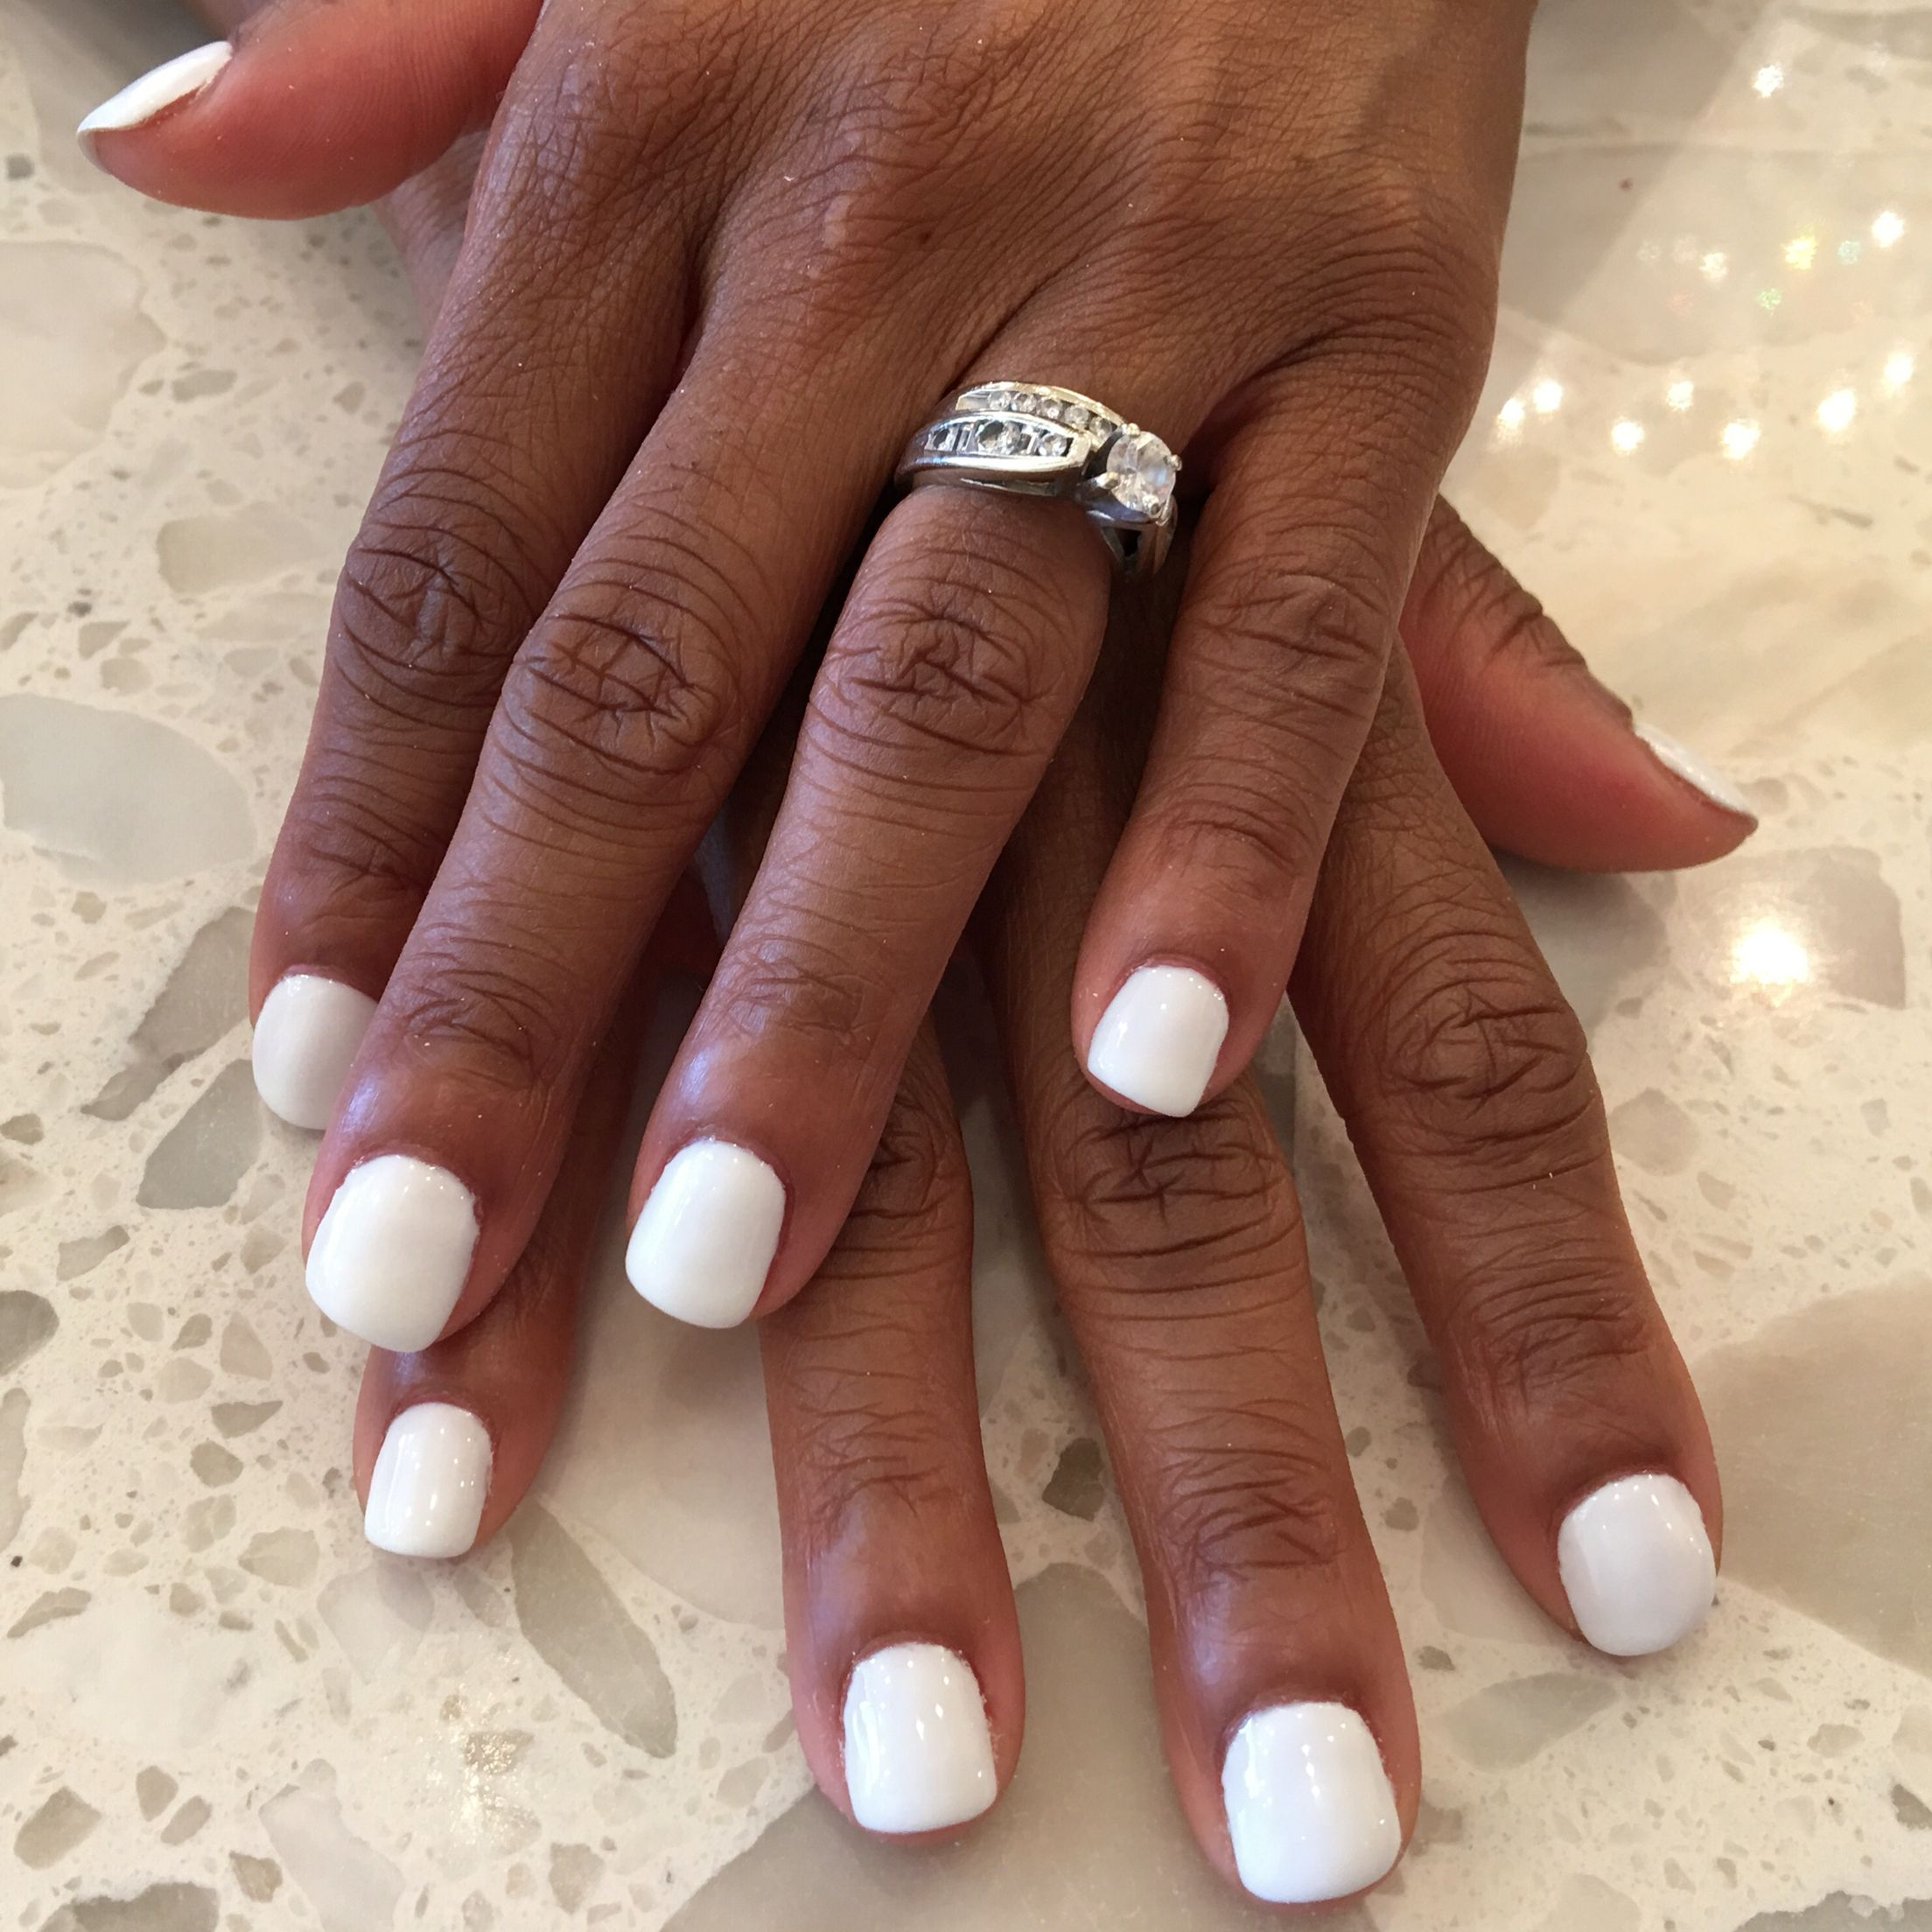 Alpine snow by opi opi_products opi gelpolish